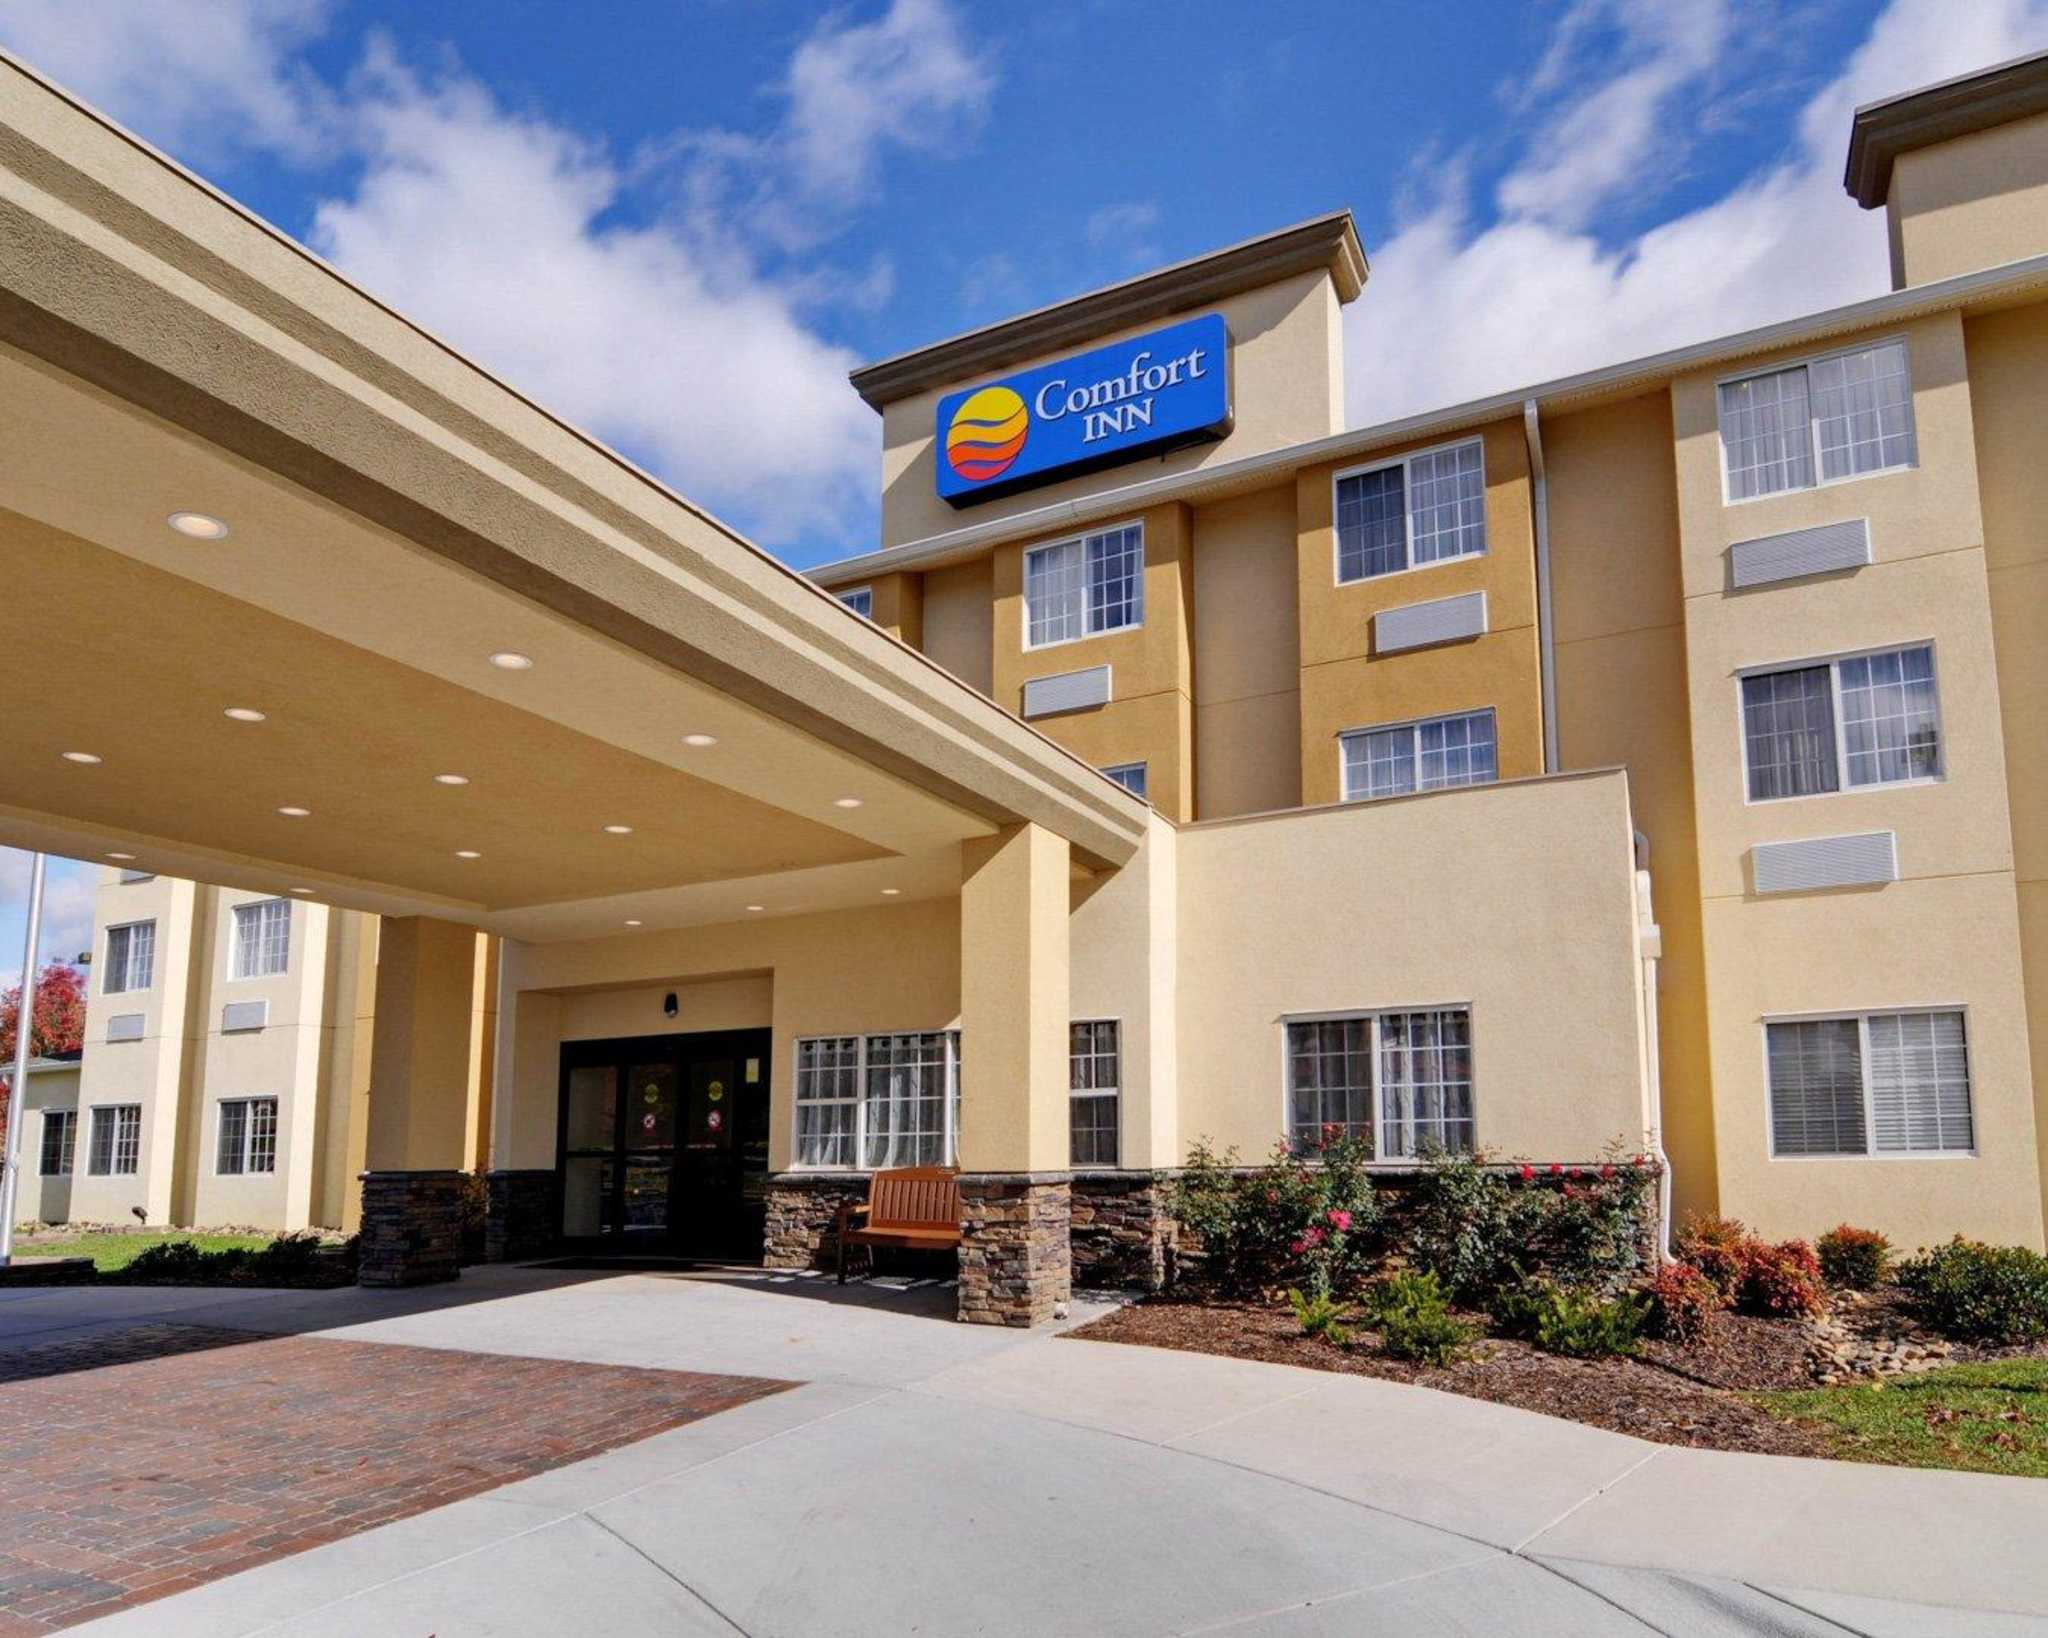 Comfort inn mount airy in mount airy nc 336 783 0 for Mont airy